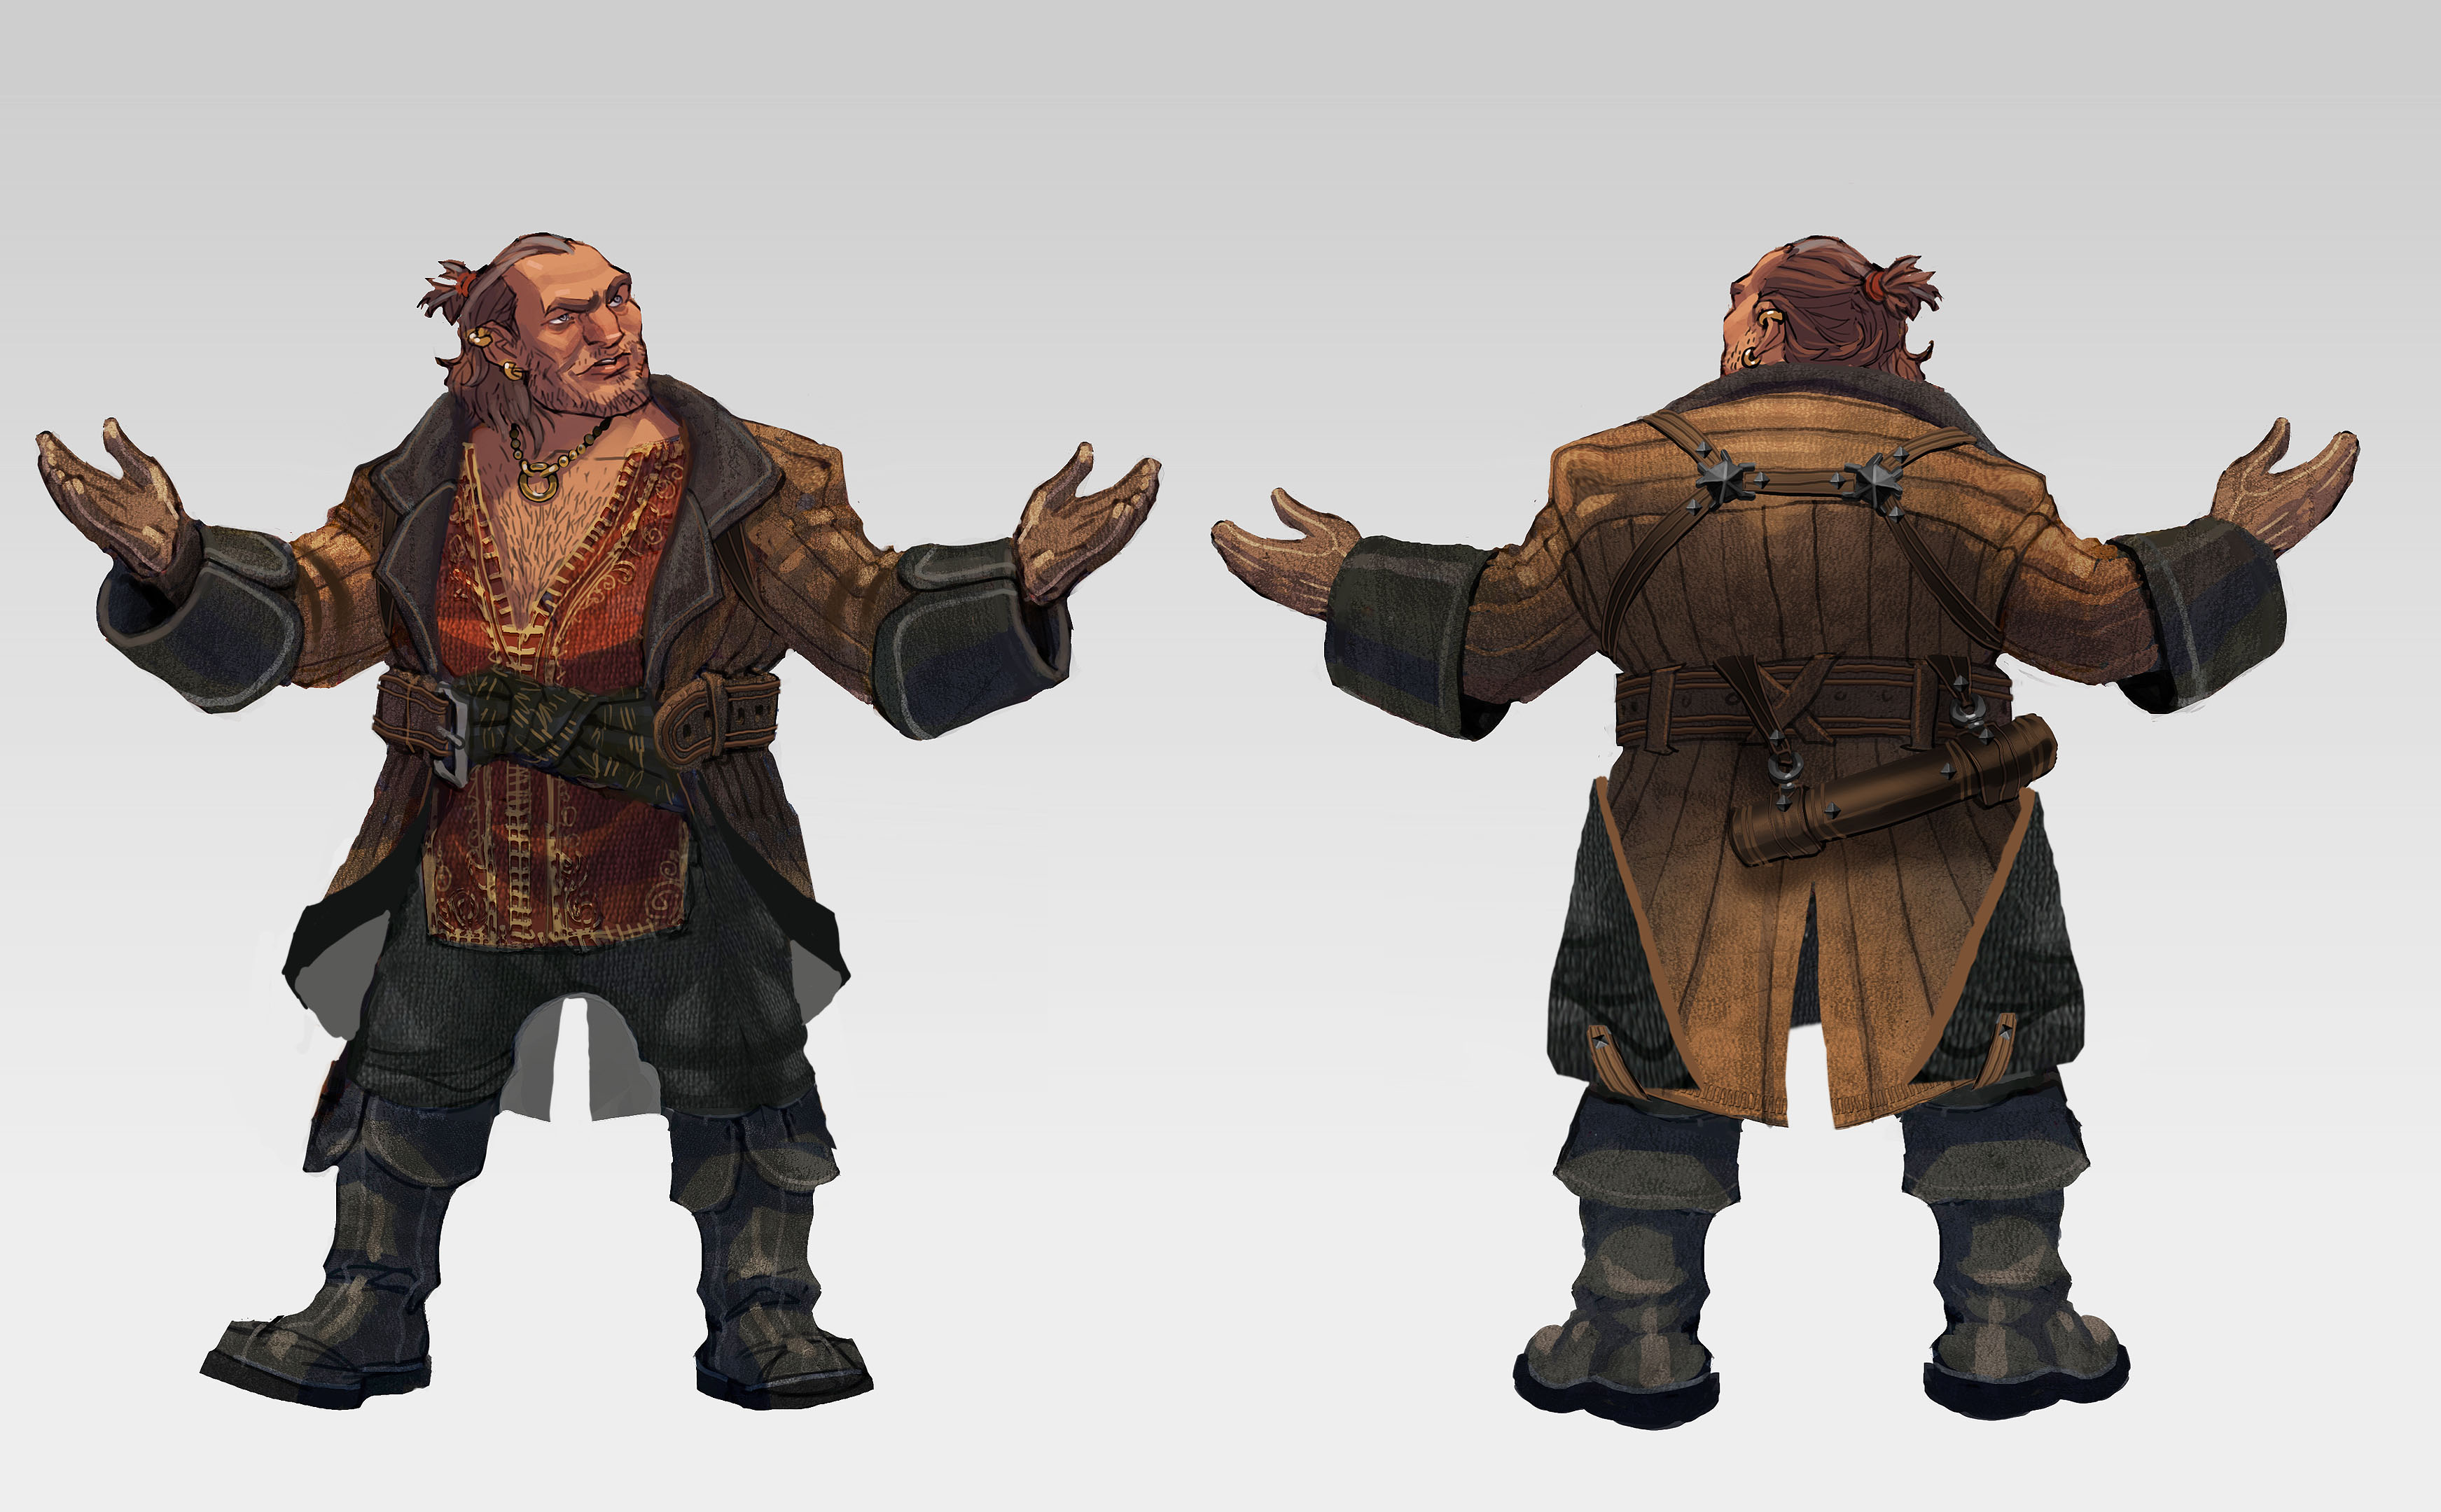 Varric Dragon Age Inquisition Romance Varric For Dragon Age ii